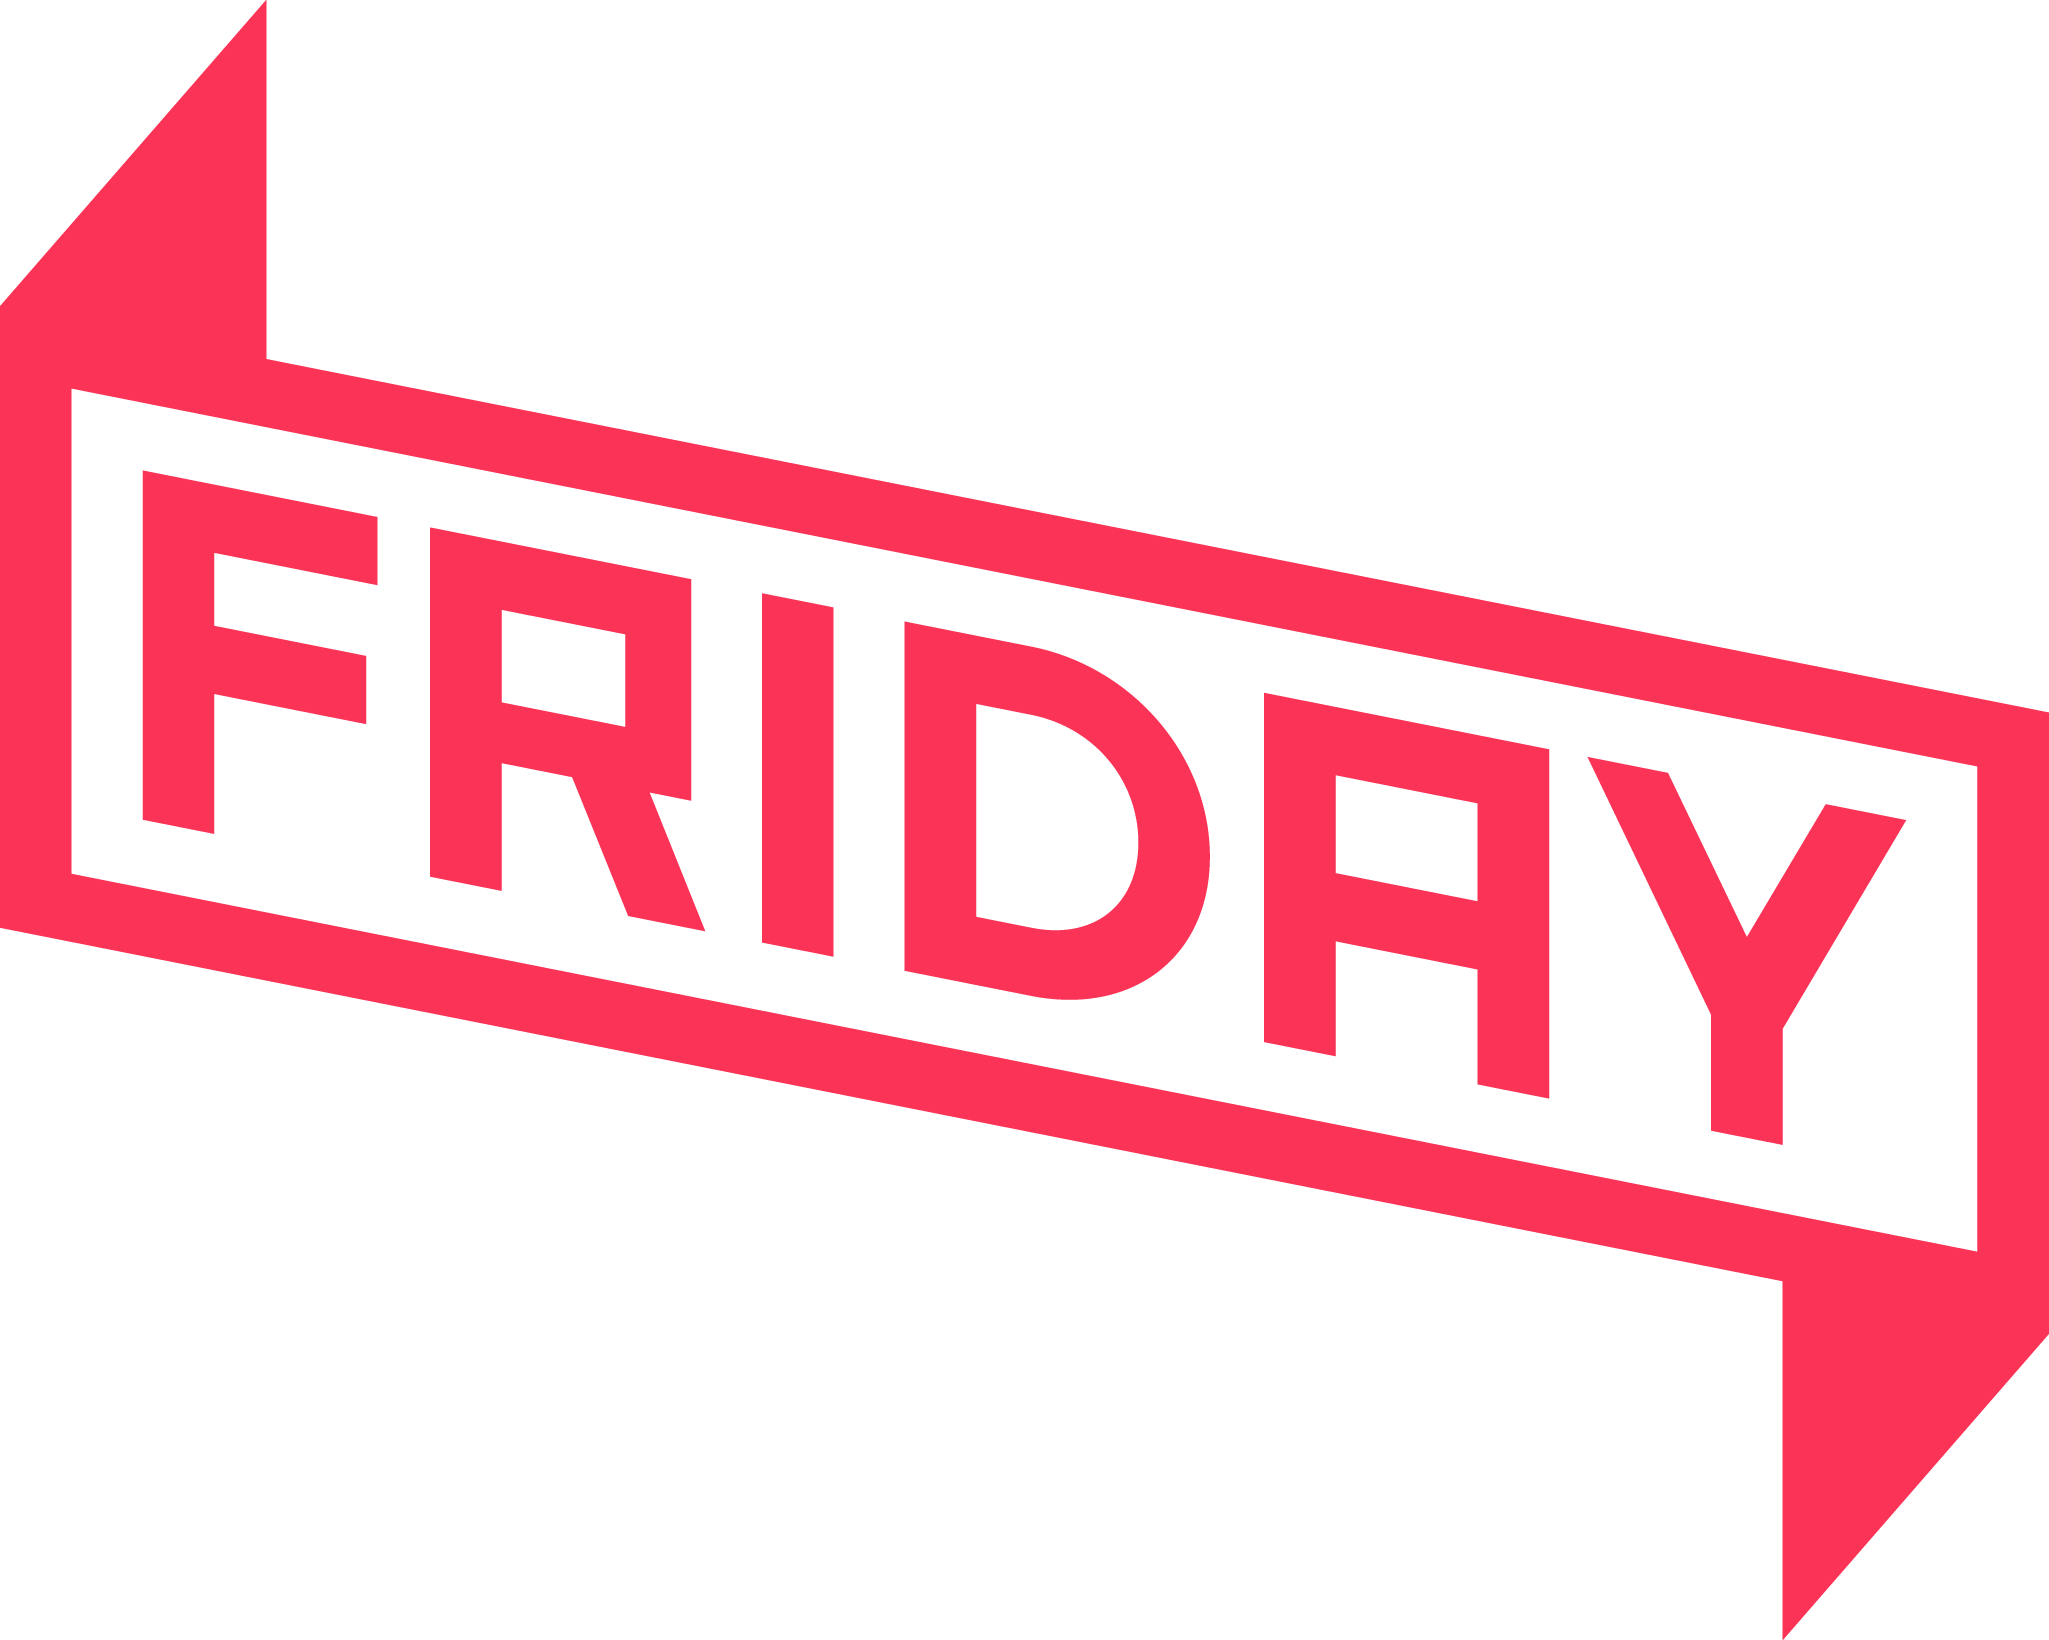 Friday Logo PNG (1)